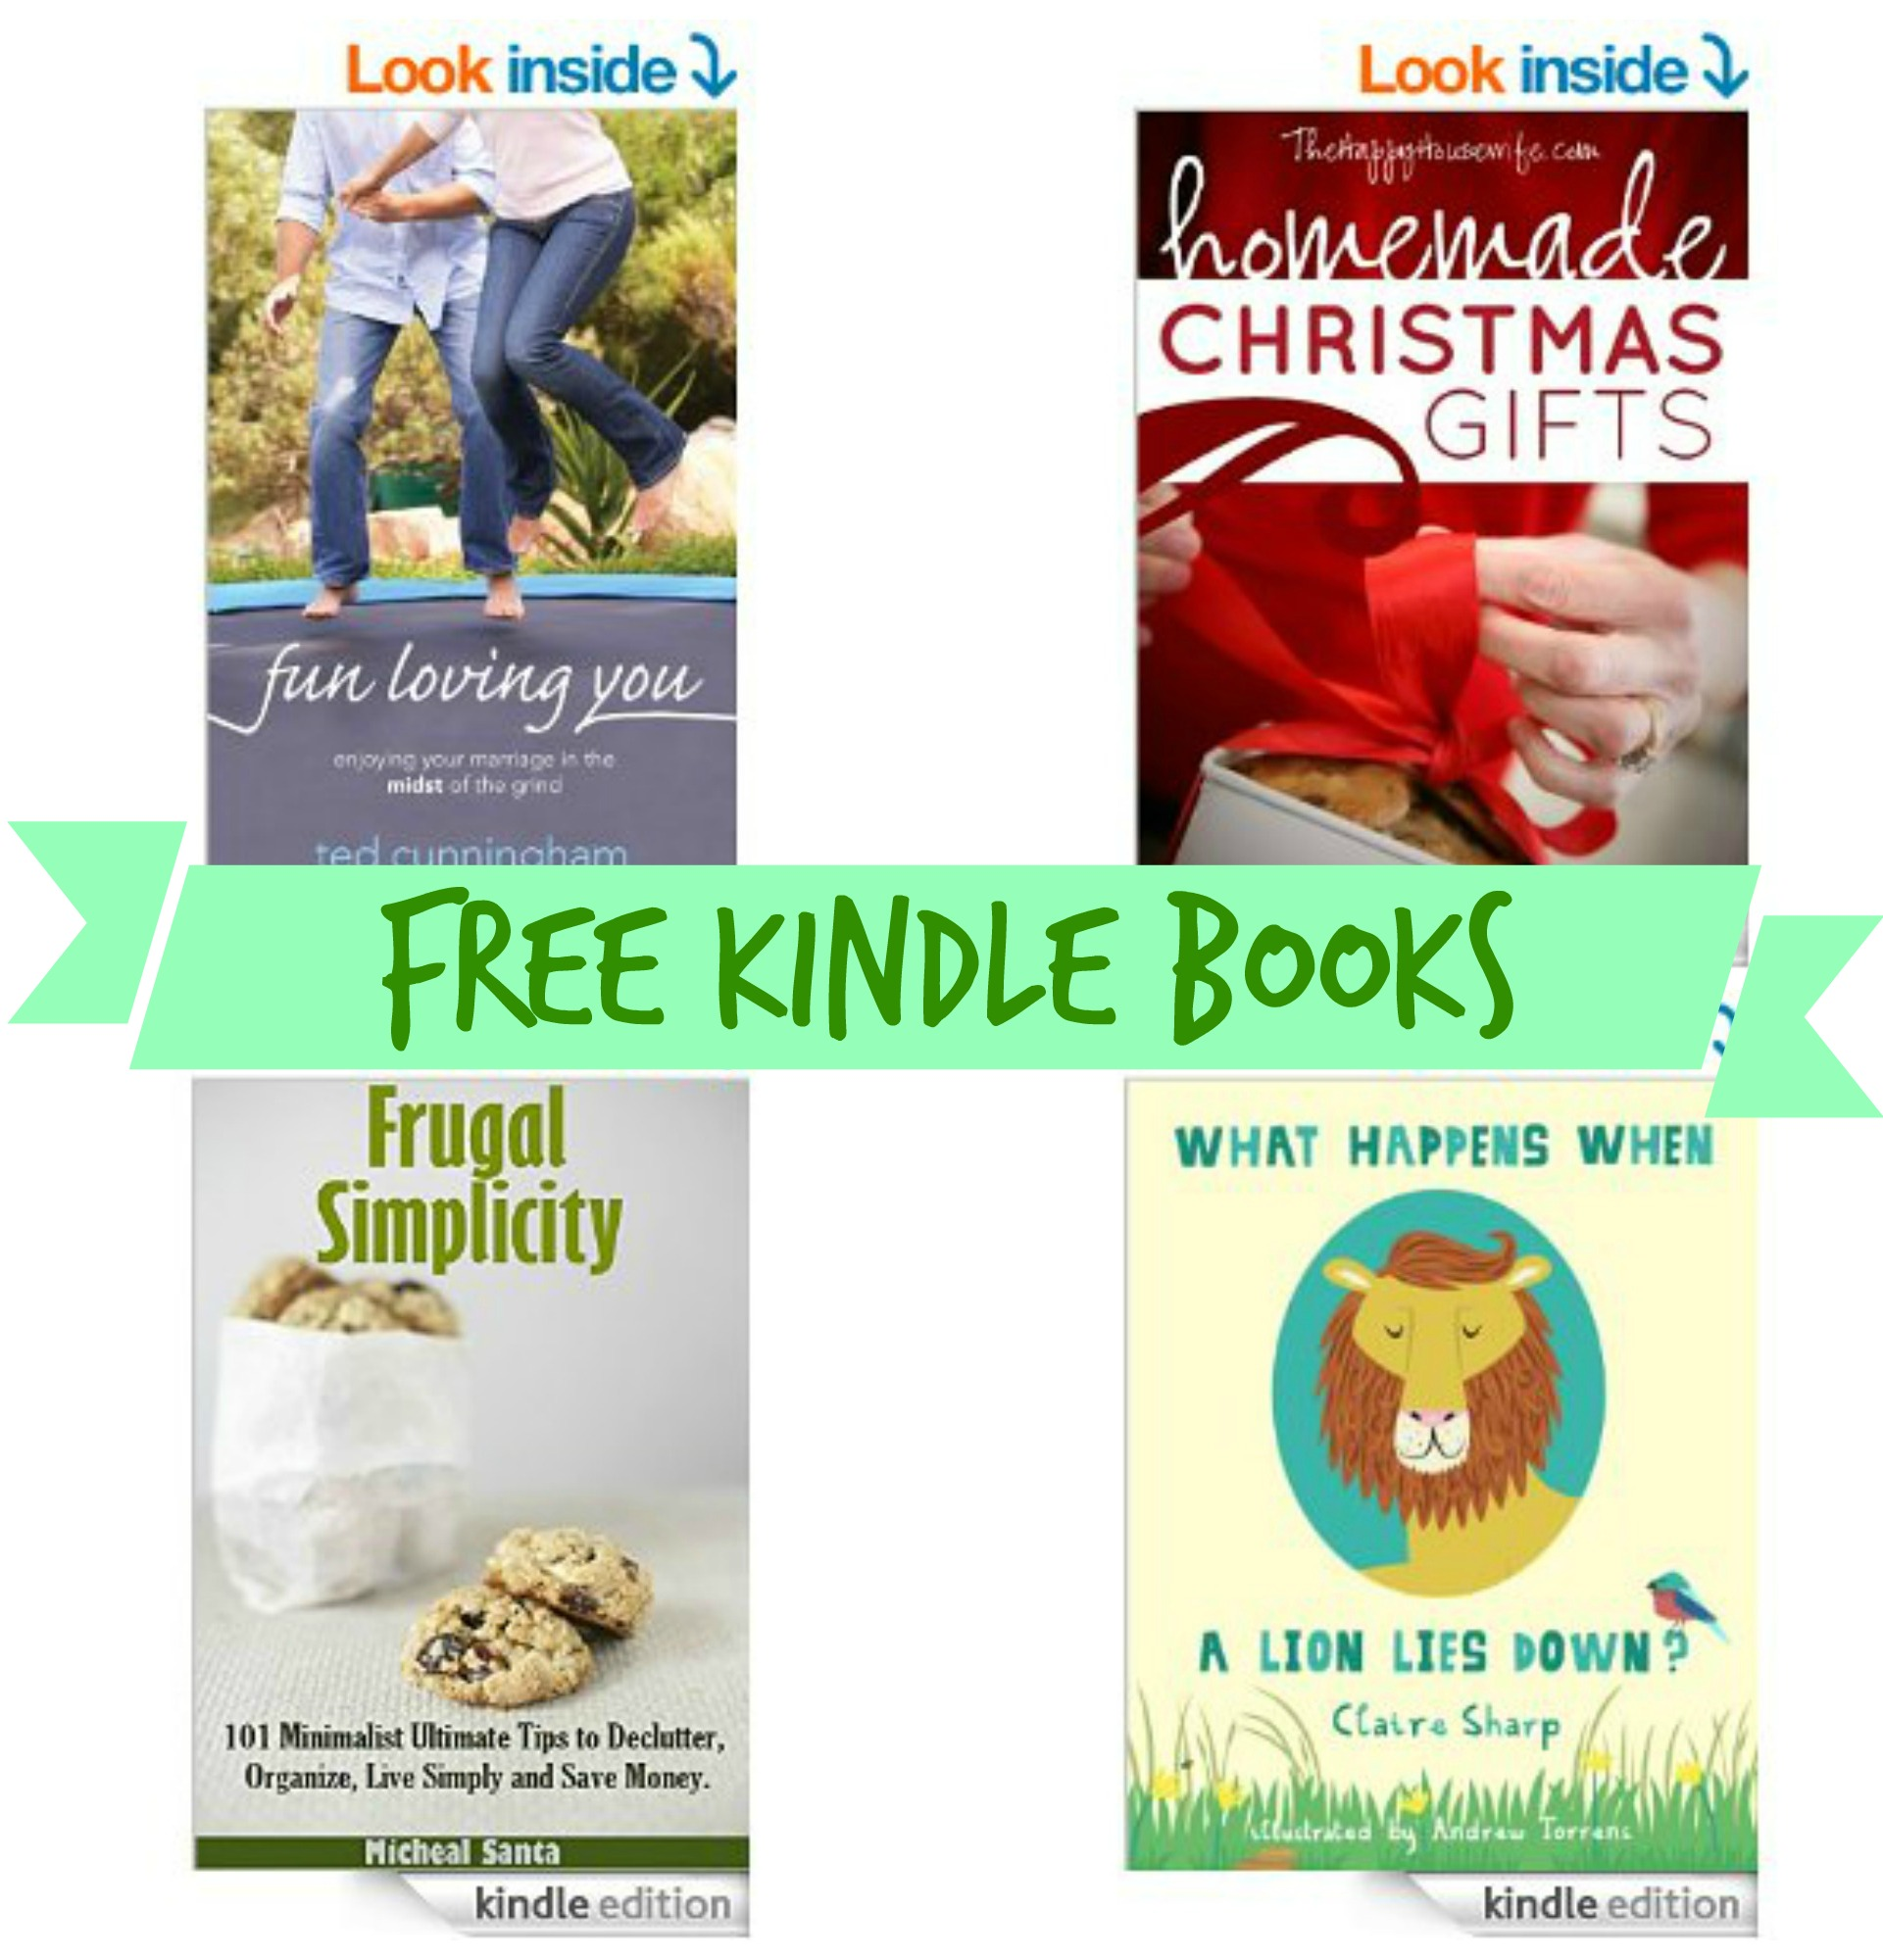 17 Free Kindle Books Firefly From Africa Frugal